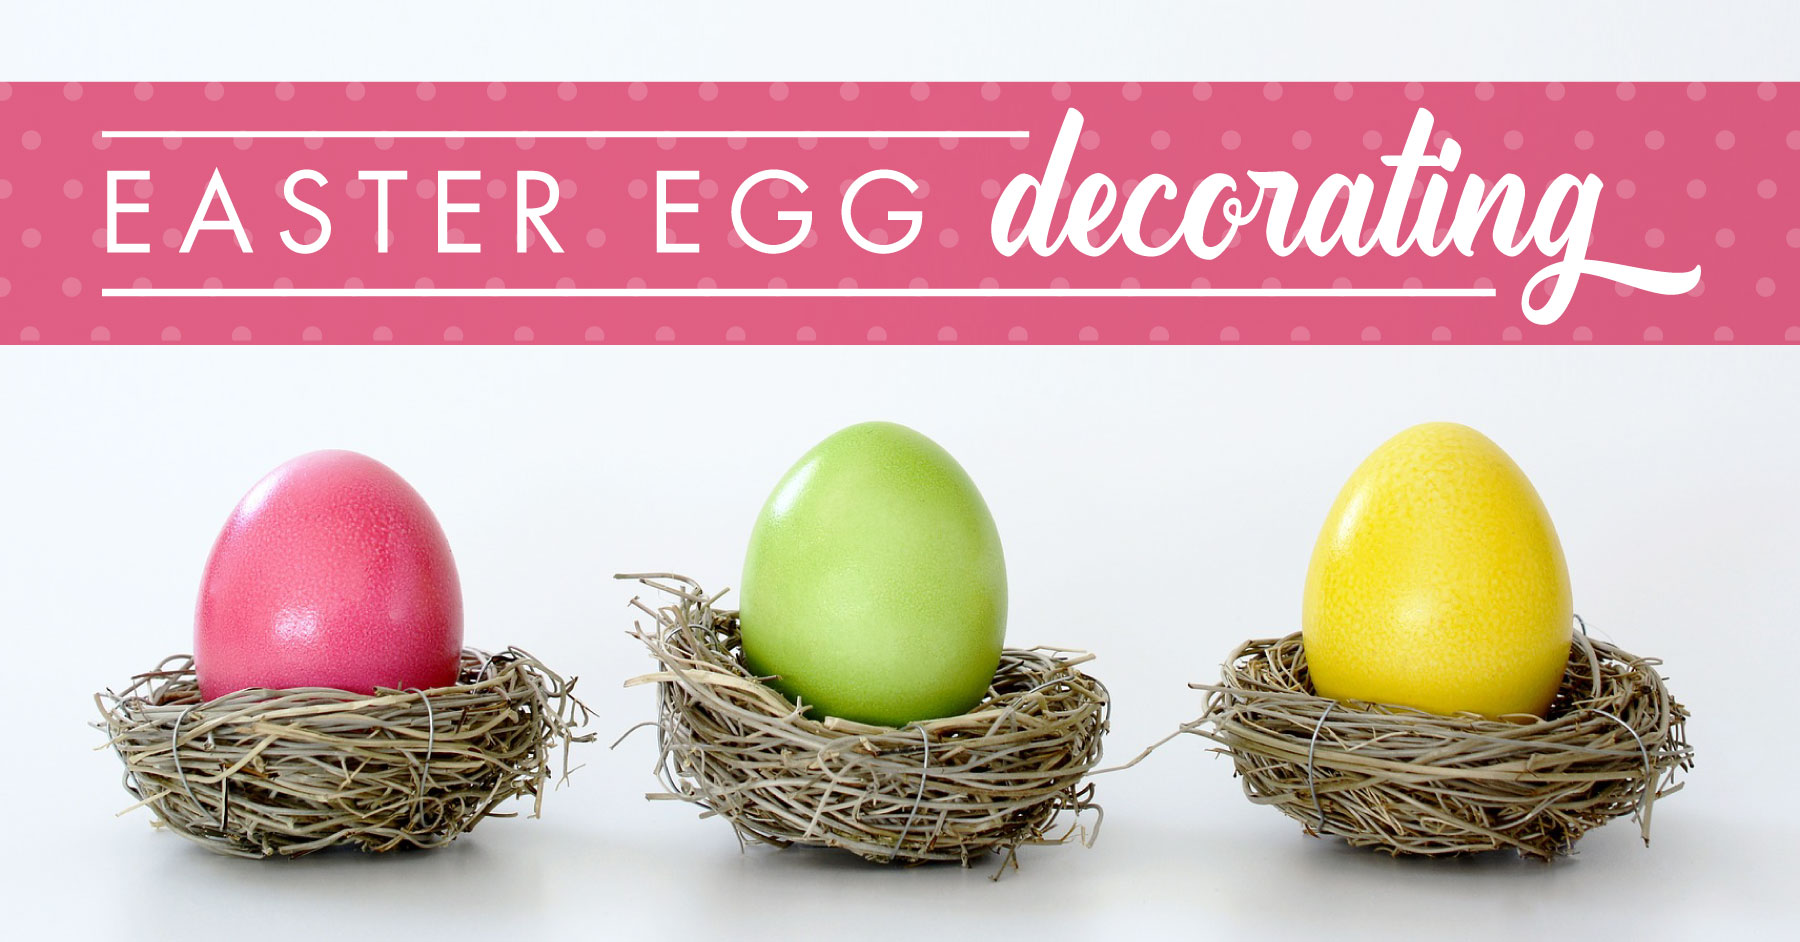 Easter Egg Decorating Tips & Ideas